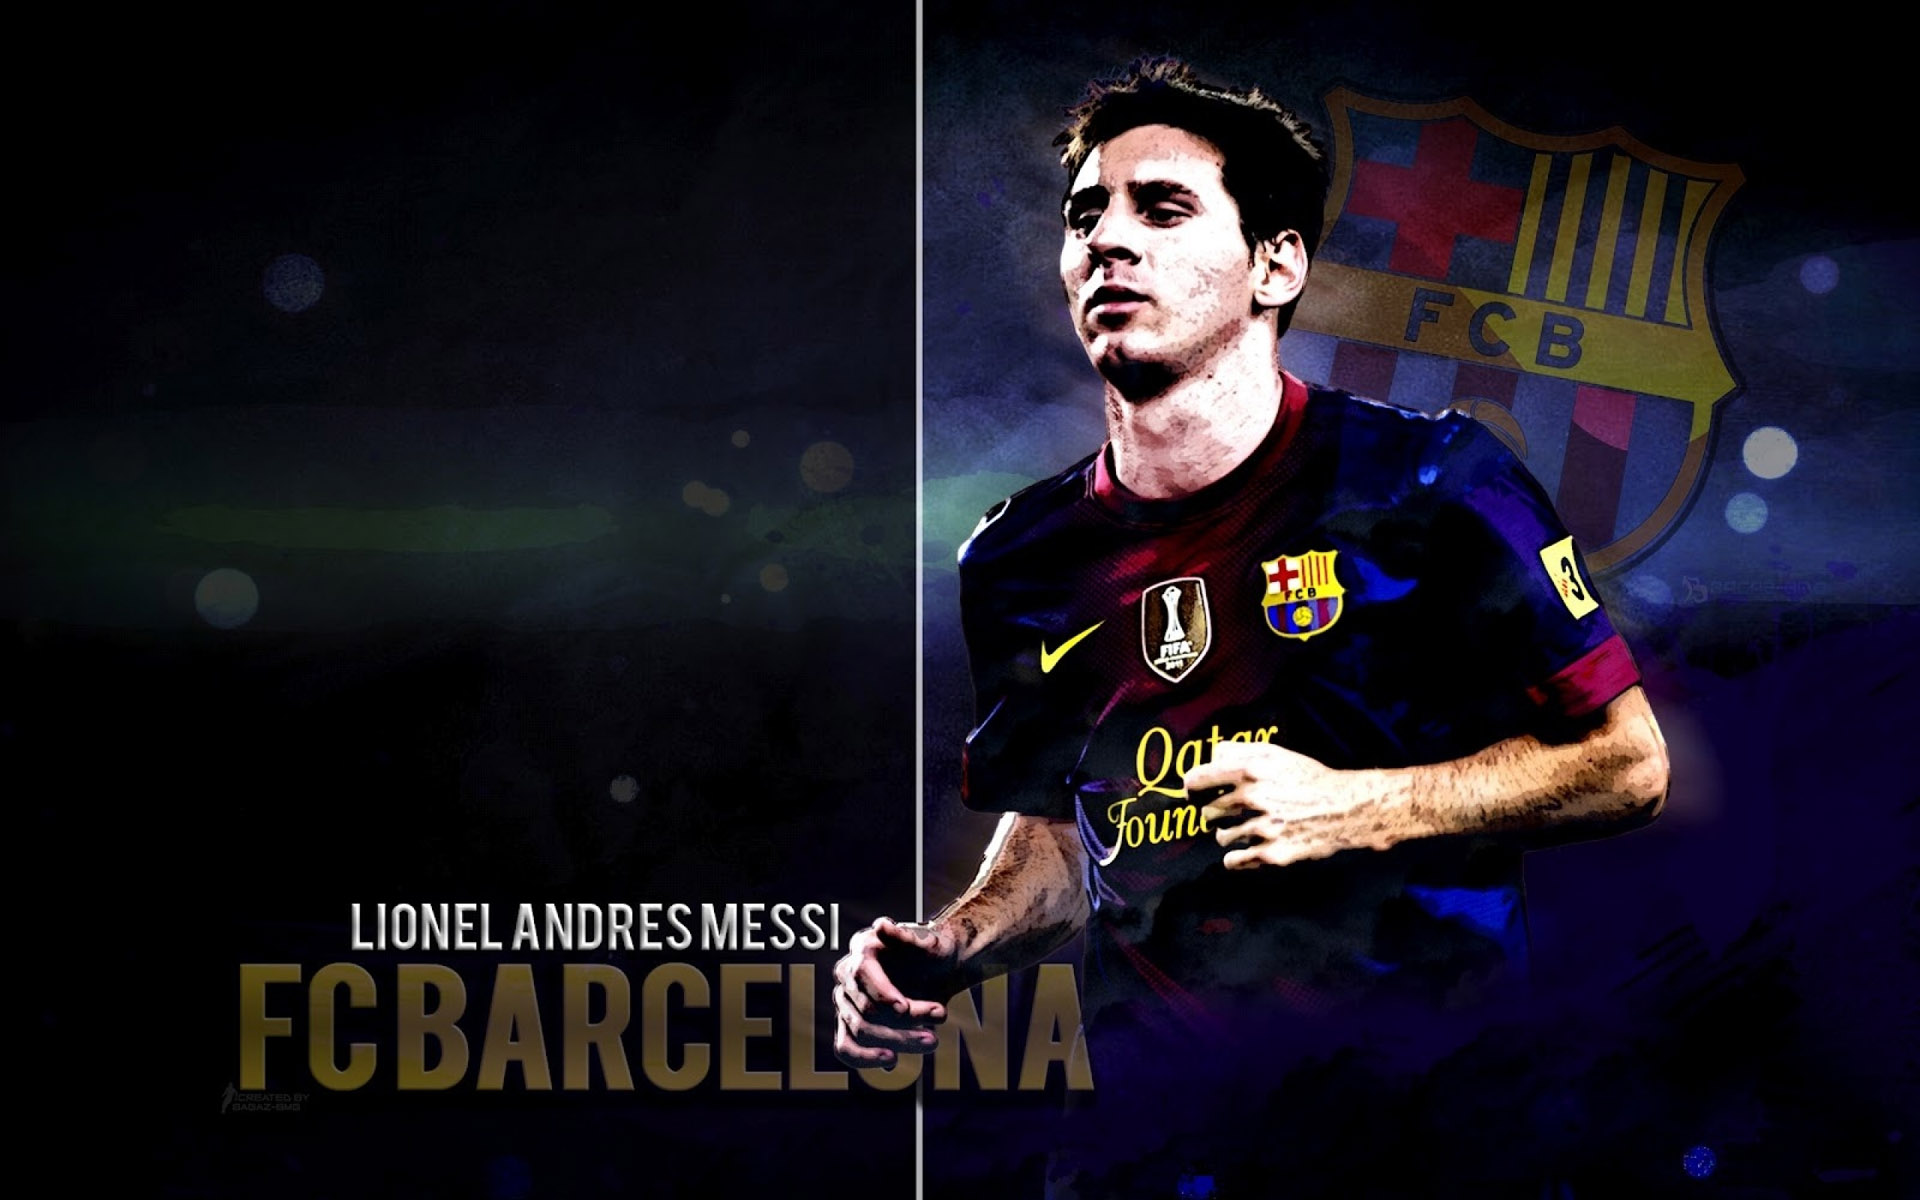 Lionel messi wallpapers pictures images lionel messi widescreen wallpaper 1920x1200 voltagebd Choice Image